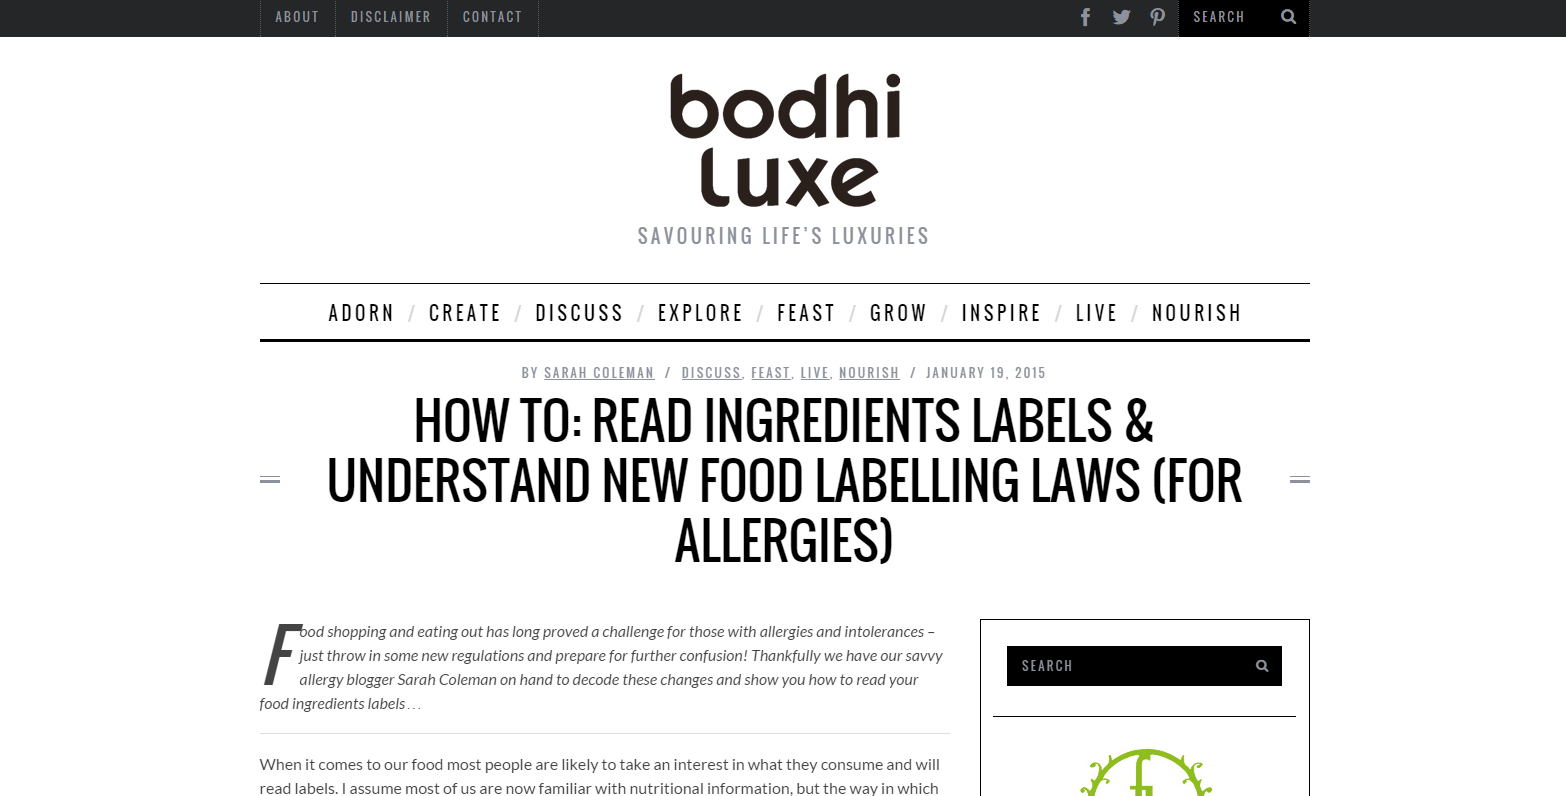 How To Read Ingredients Labels & Understand New Food Labelling Laws